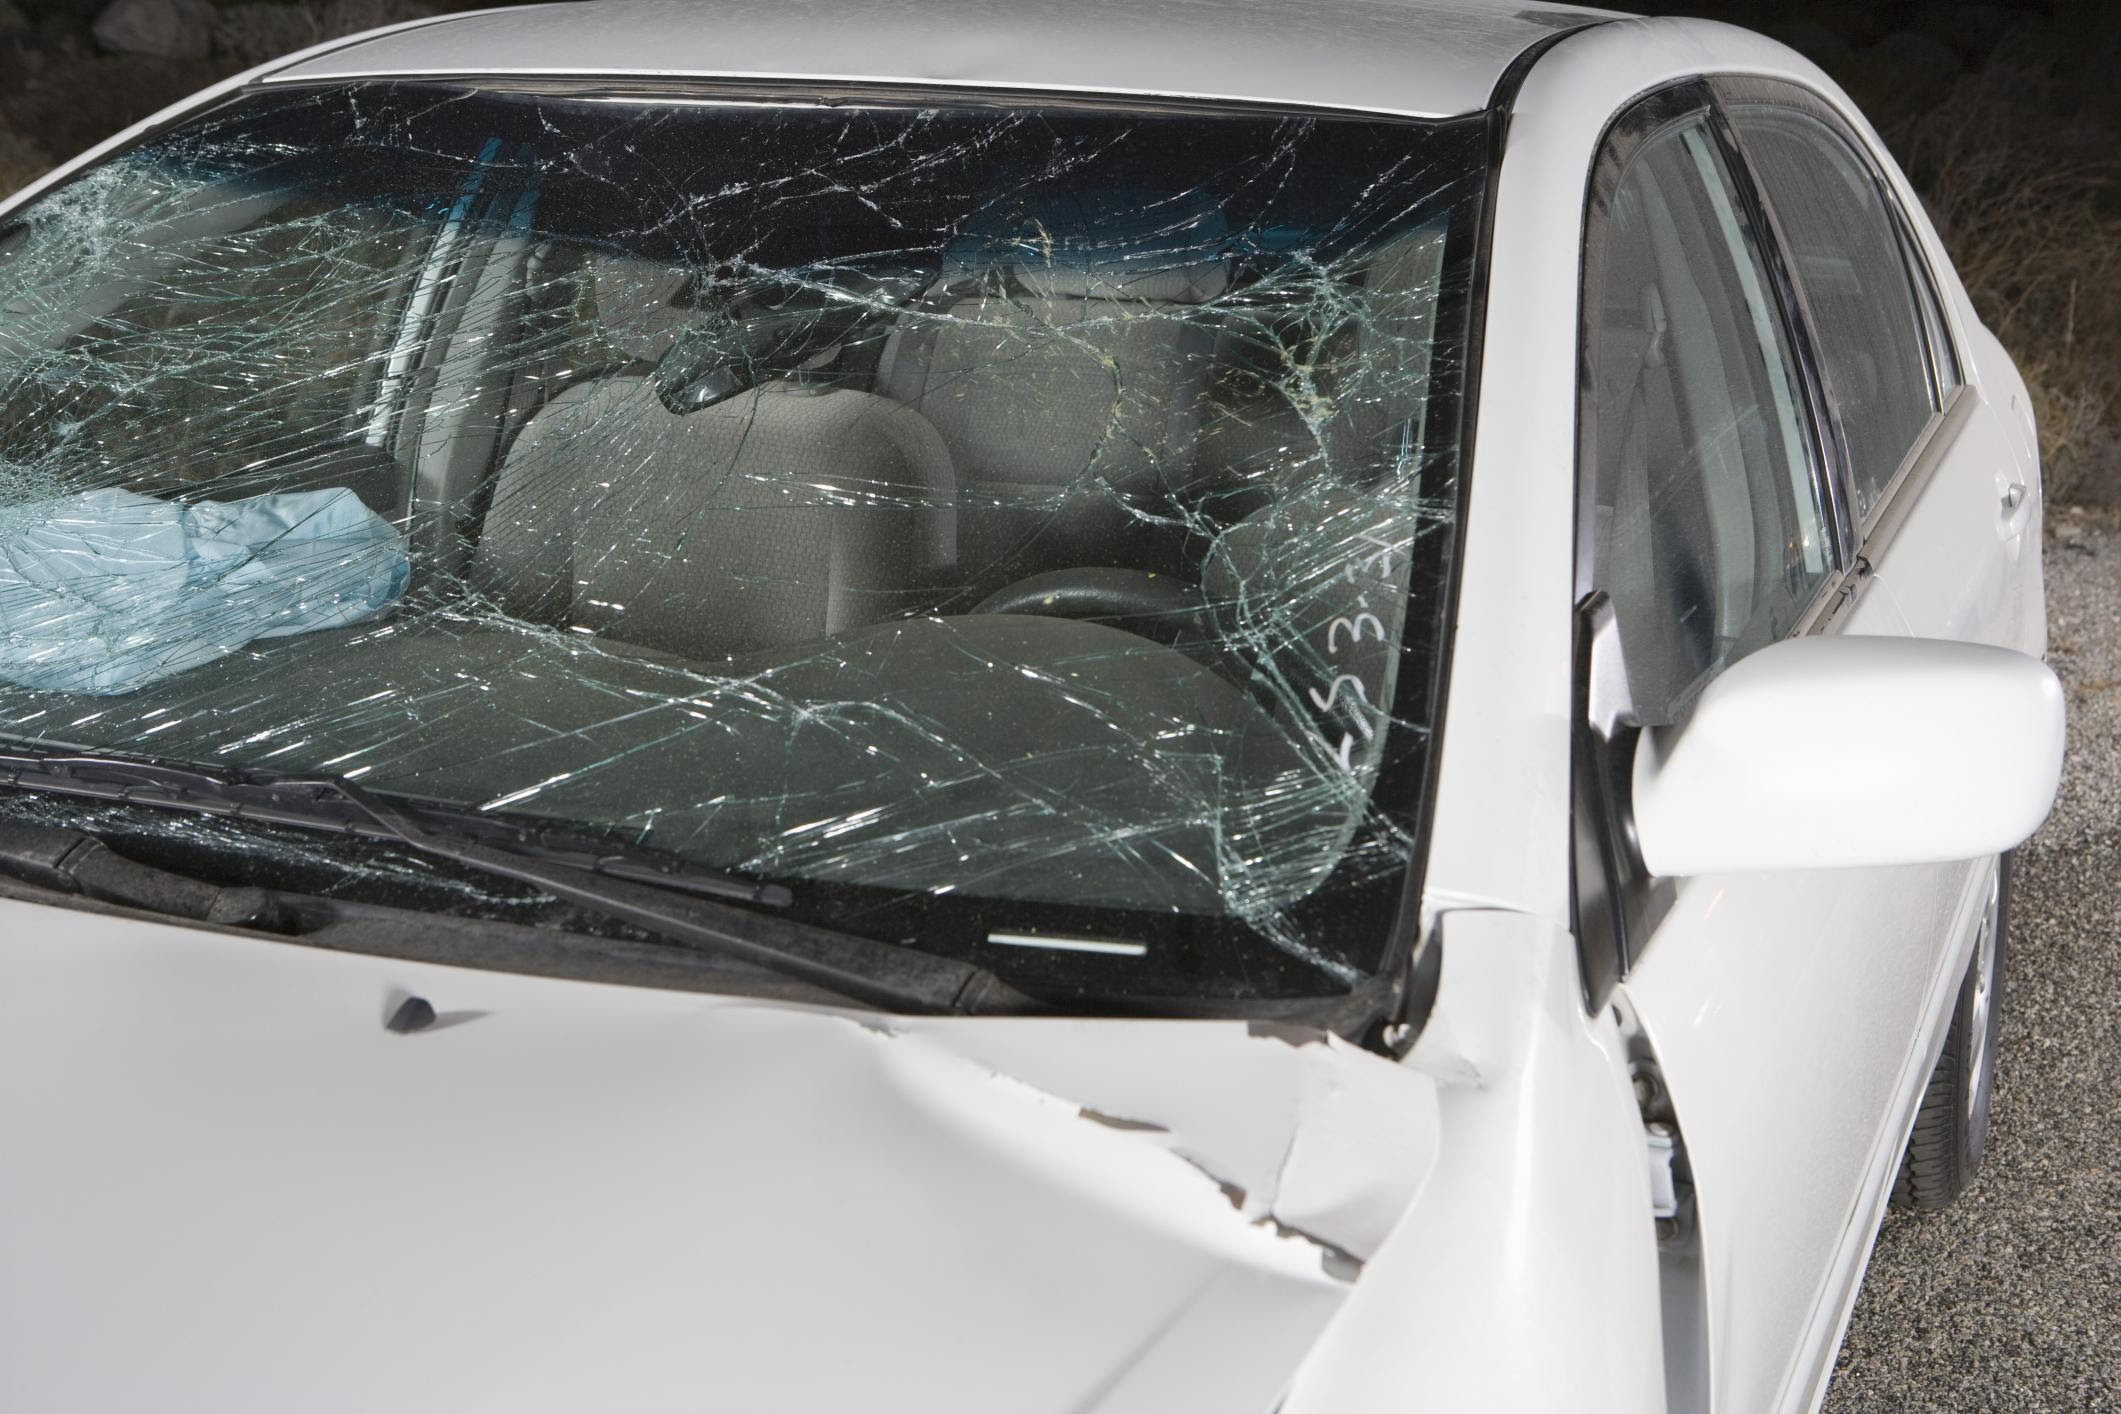 How Dangerous Is A Cracked Windshield